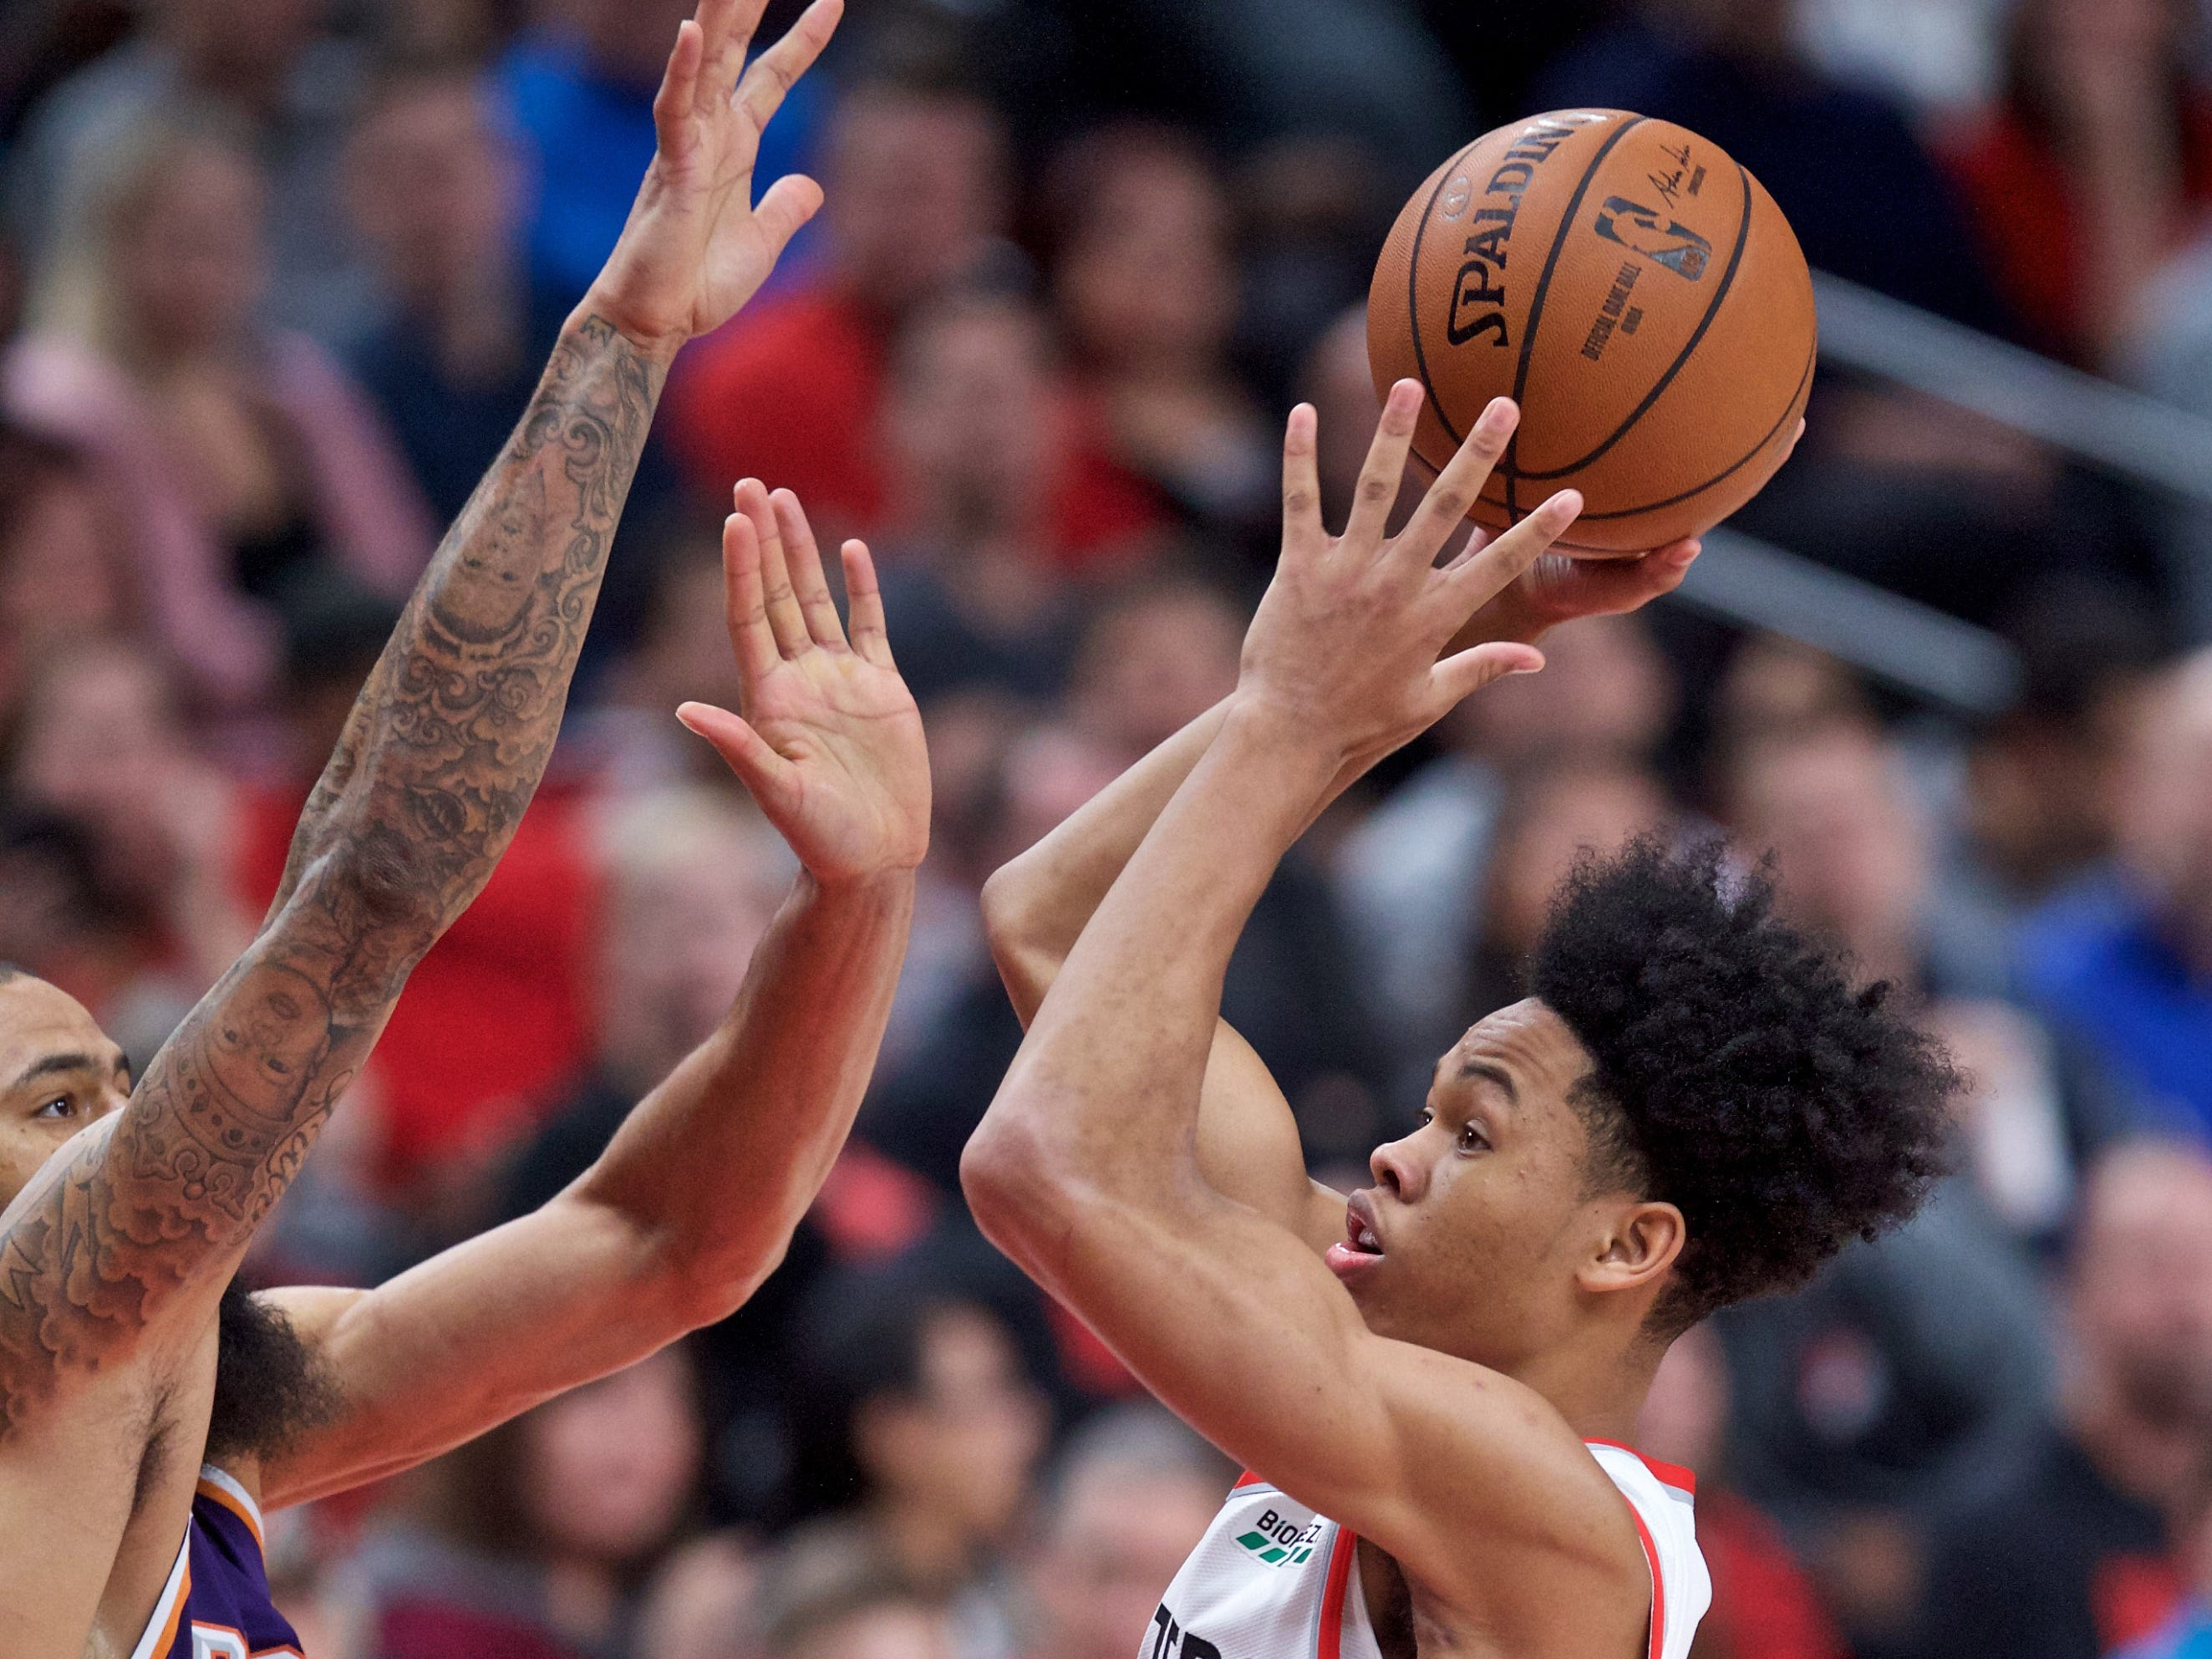 Oct 10, 2018; Portland, OR, USA; Portland Trail Blazers guard Anfernee Simons (24) shoots over Phoenix Suns guard Troy Daniels (30) during the third quarter at the Moda Center.